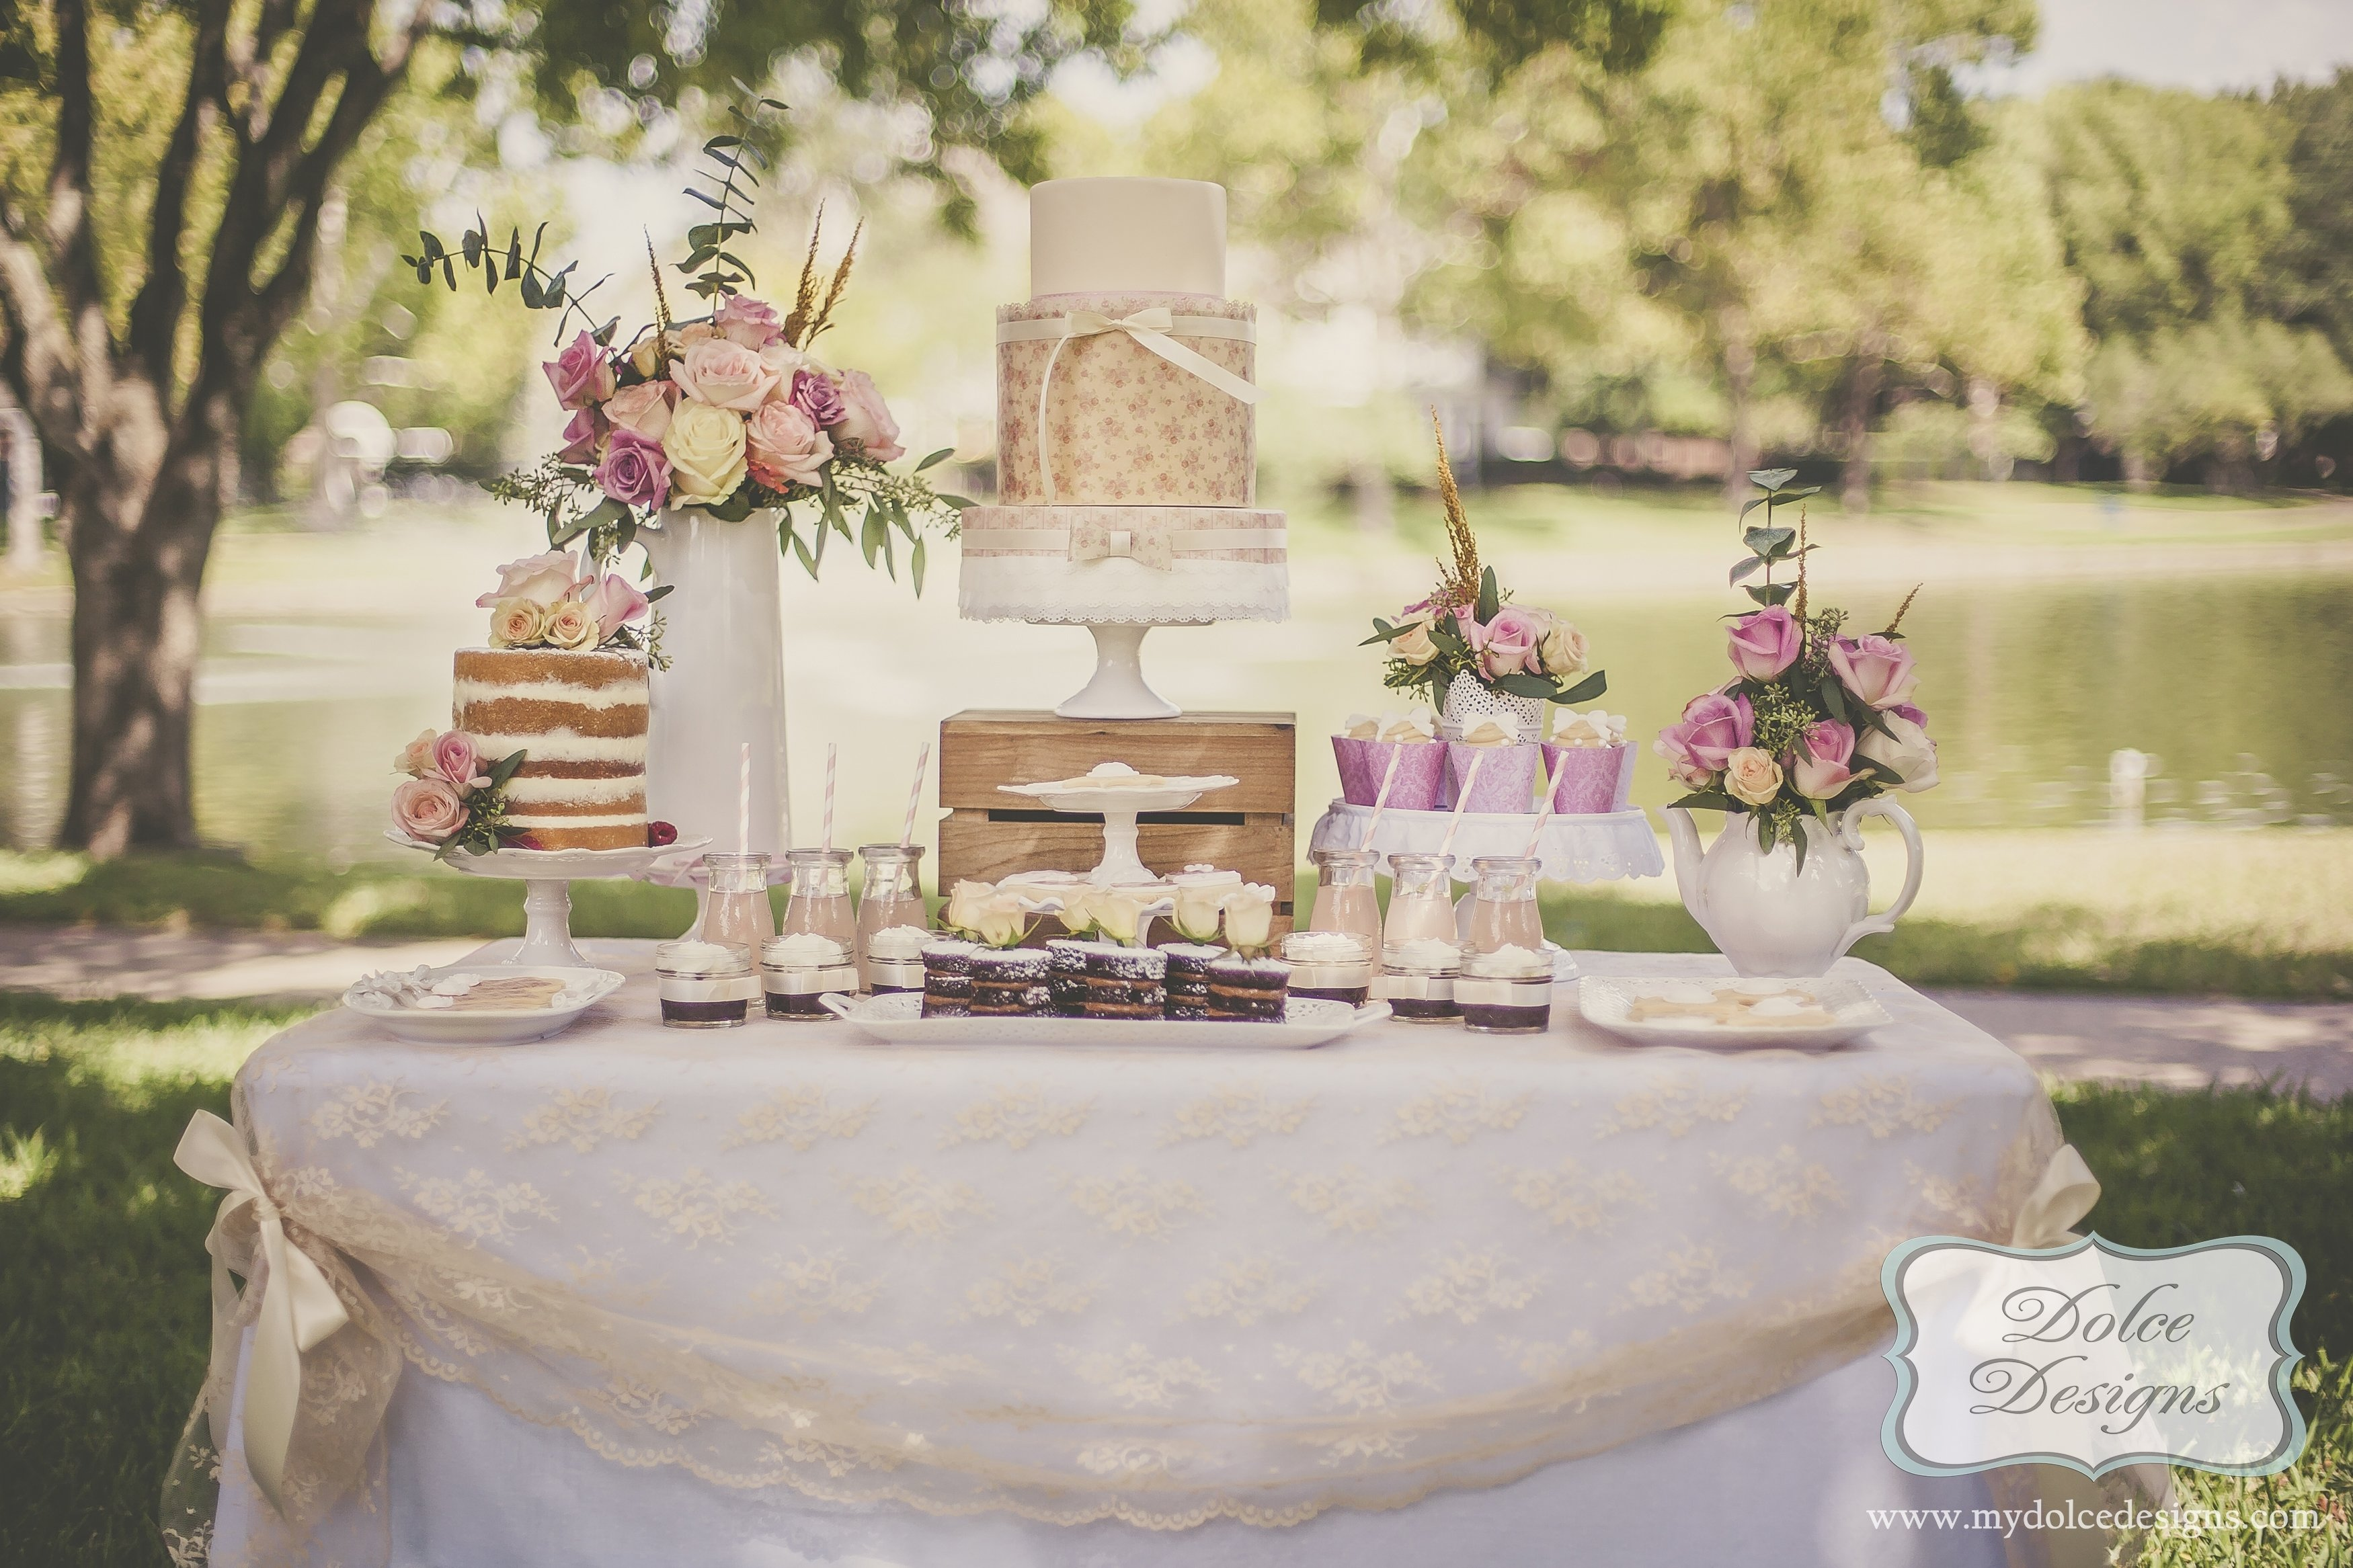 10 Attractive Shabby Chic Bridal Shower Ideas shabby chic bridal shower dolce designs 2020